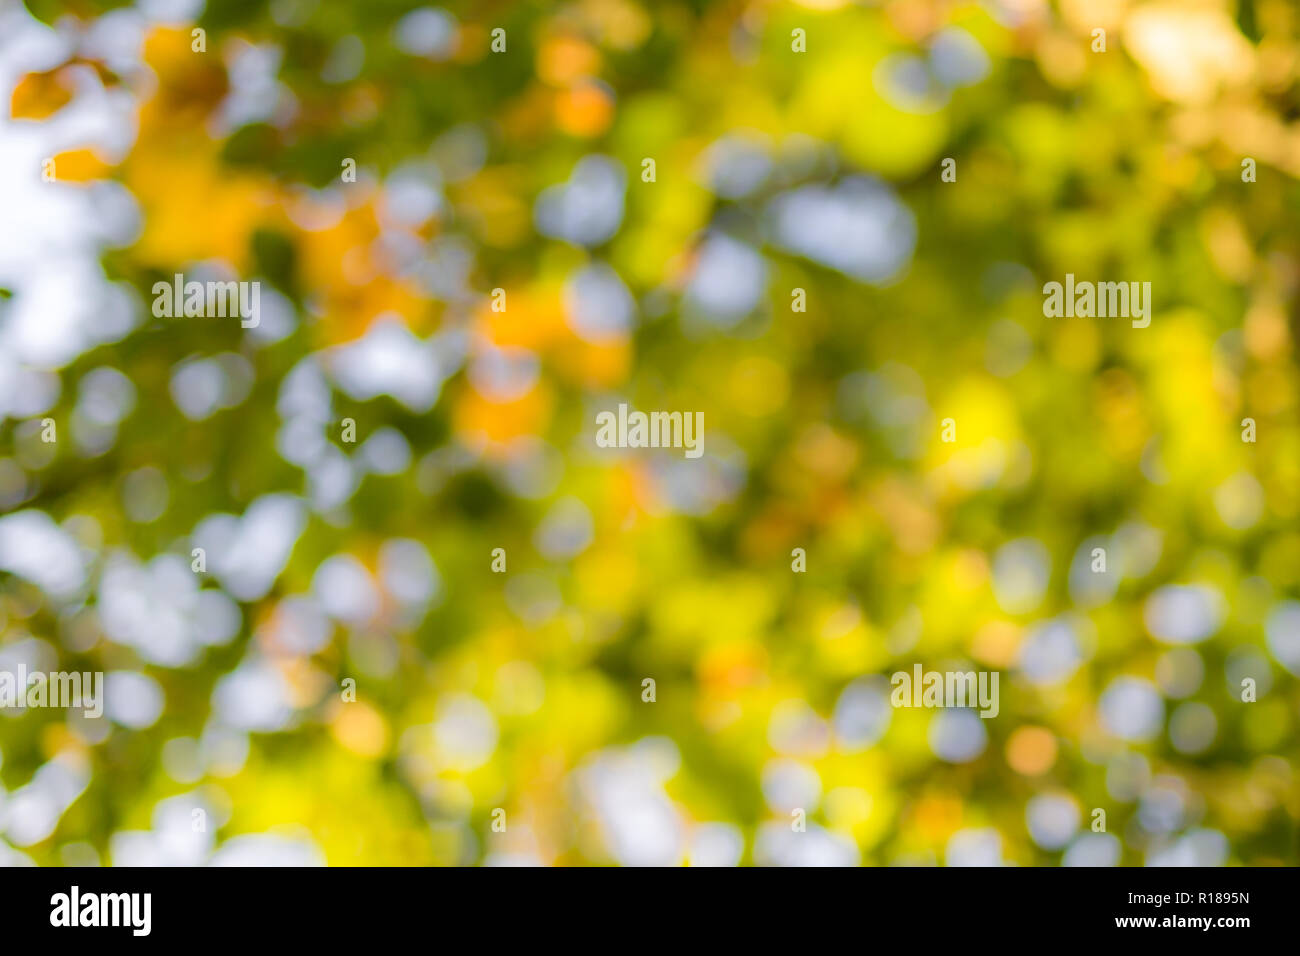 Natural green blur background in sunlight, abstract round bokeh from green leaves, blurred background - Stock Image